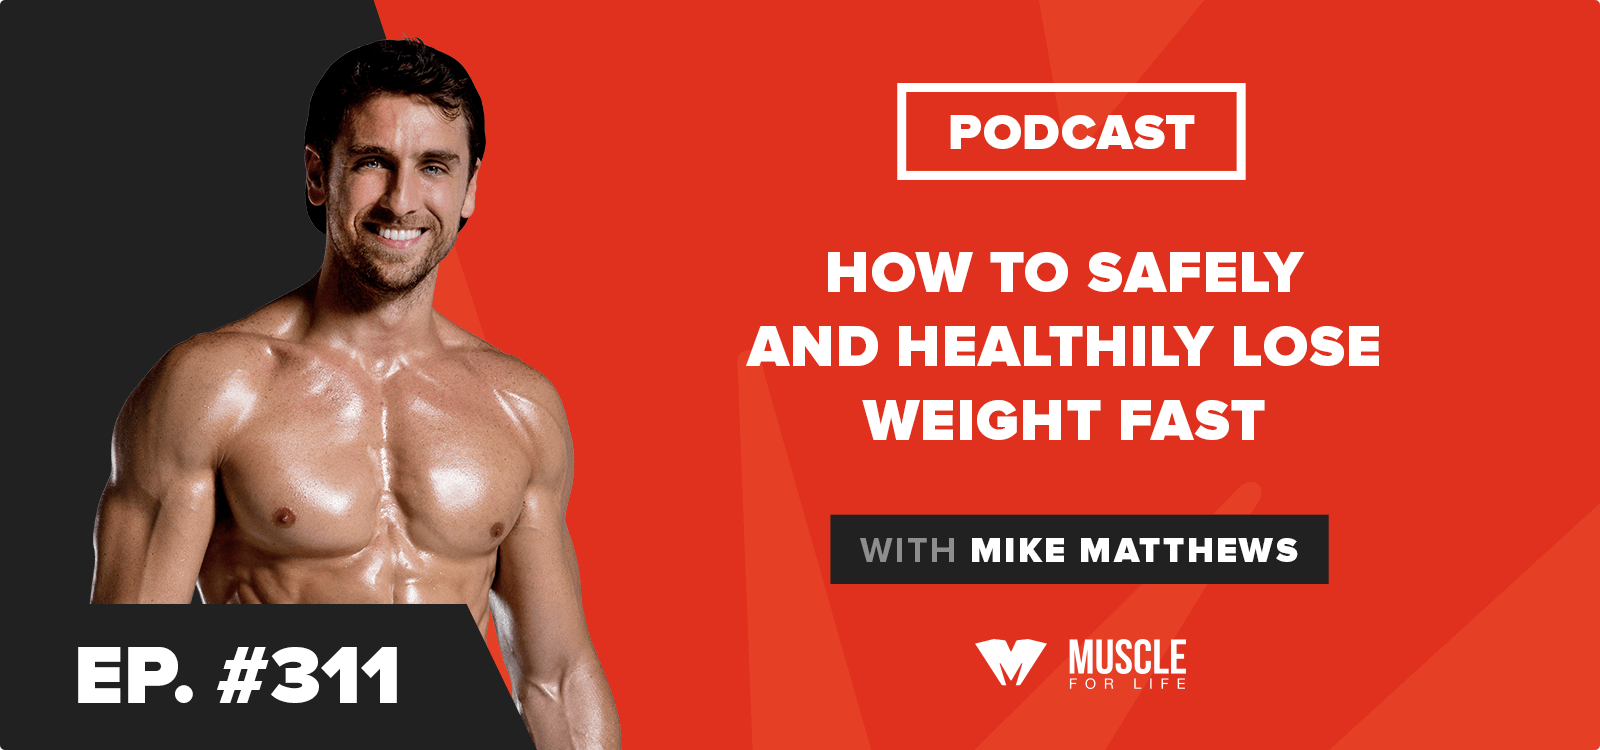 How to Safely and Healthily Lose Weight Fast